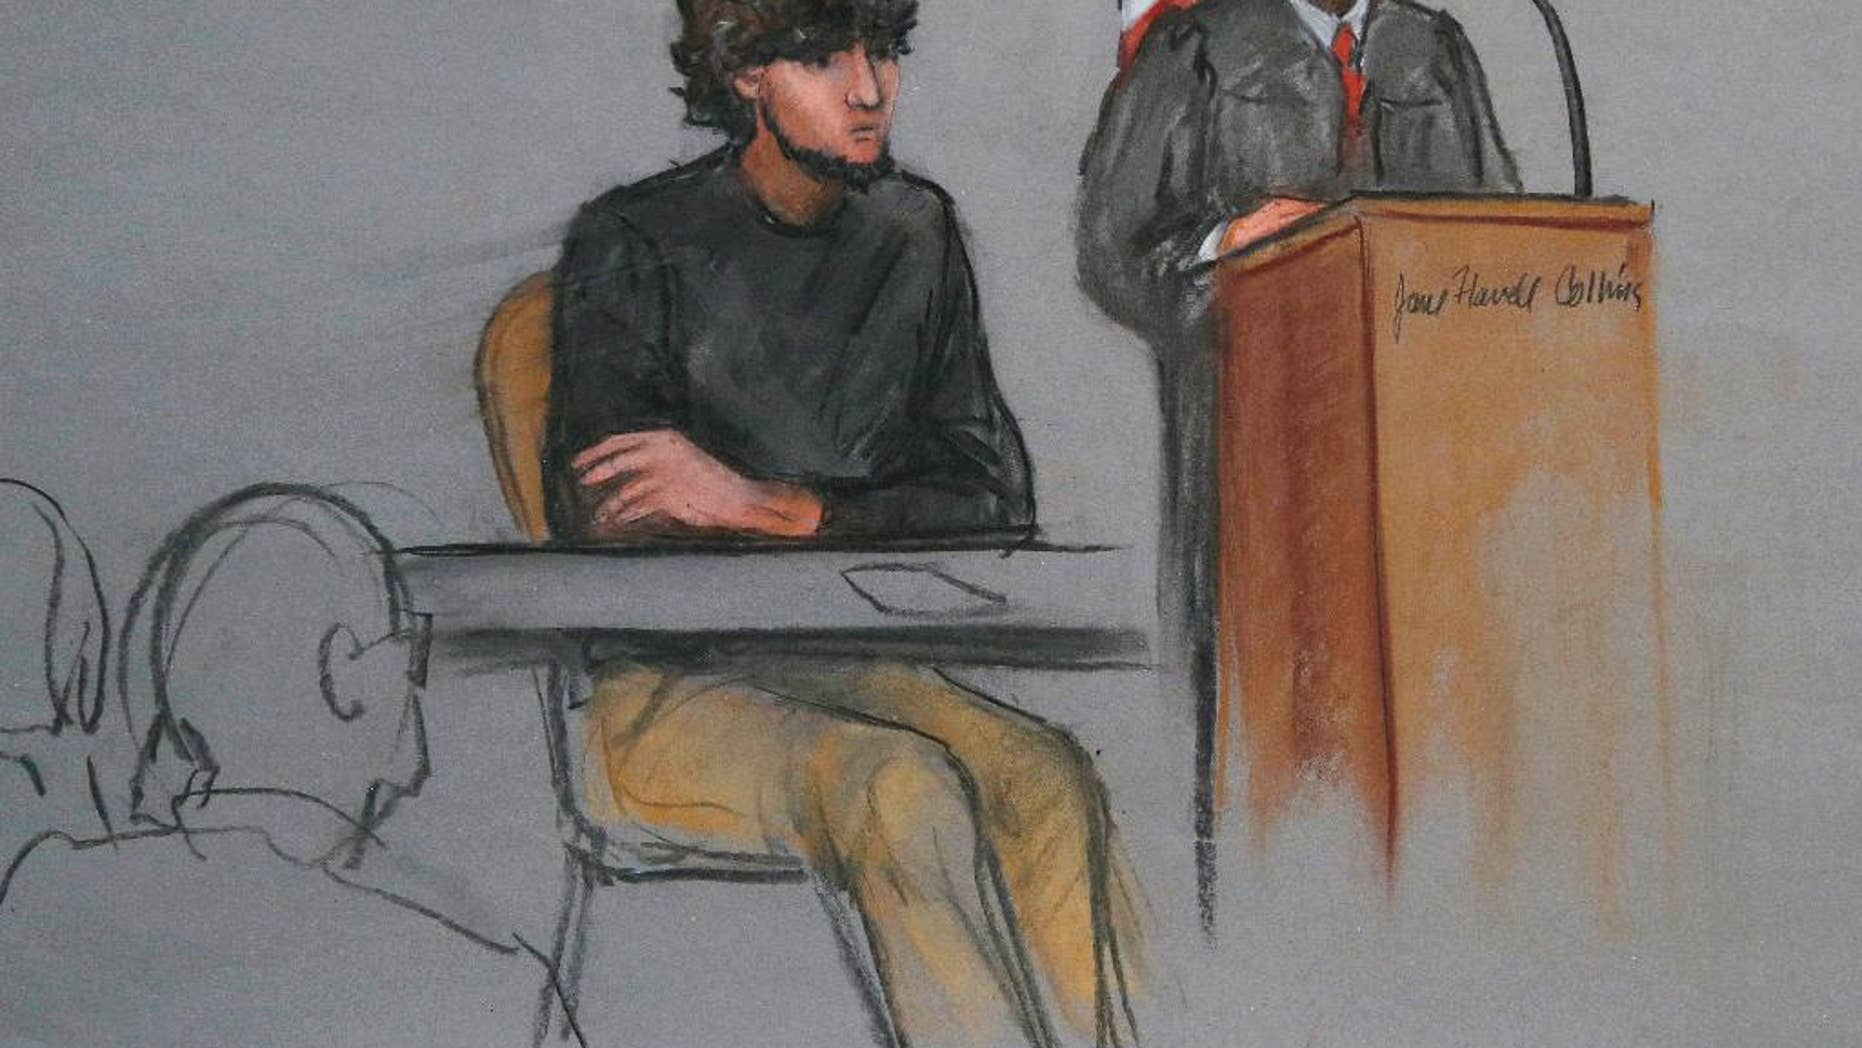 Jan. 5, 2015: In this file courtroom sketch, Boston Marathon bombing suspect Dzhokhar Tsarnaev is depicted beside U.S. District Judge George O'Toole Jr., right, as O'Toole addresses a pool of potential jurors in a jury assembly room at the federal courthouse, in Boston. (AP)